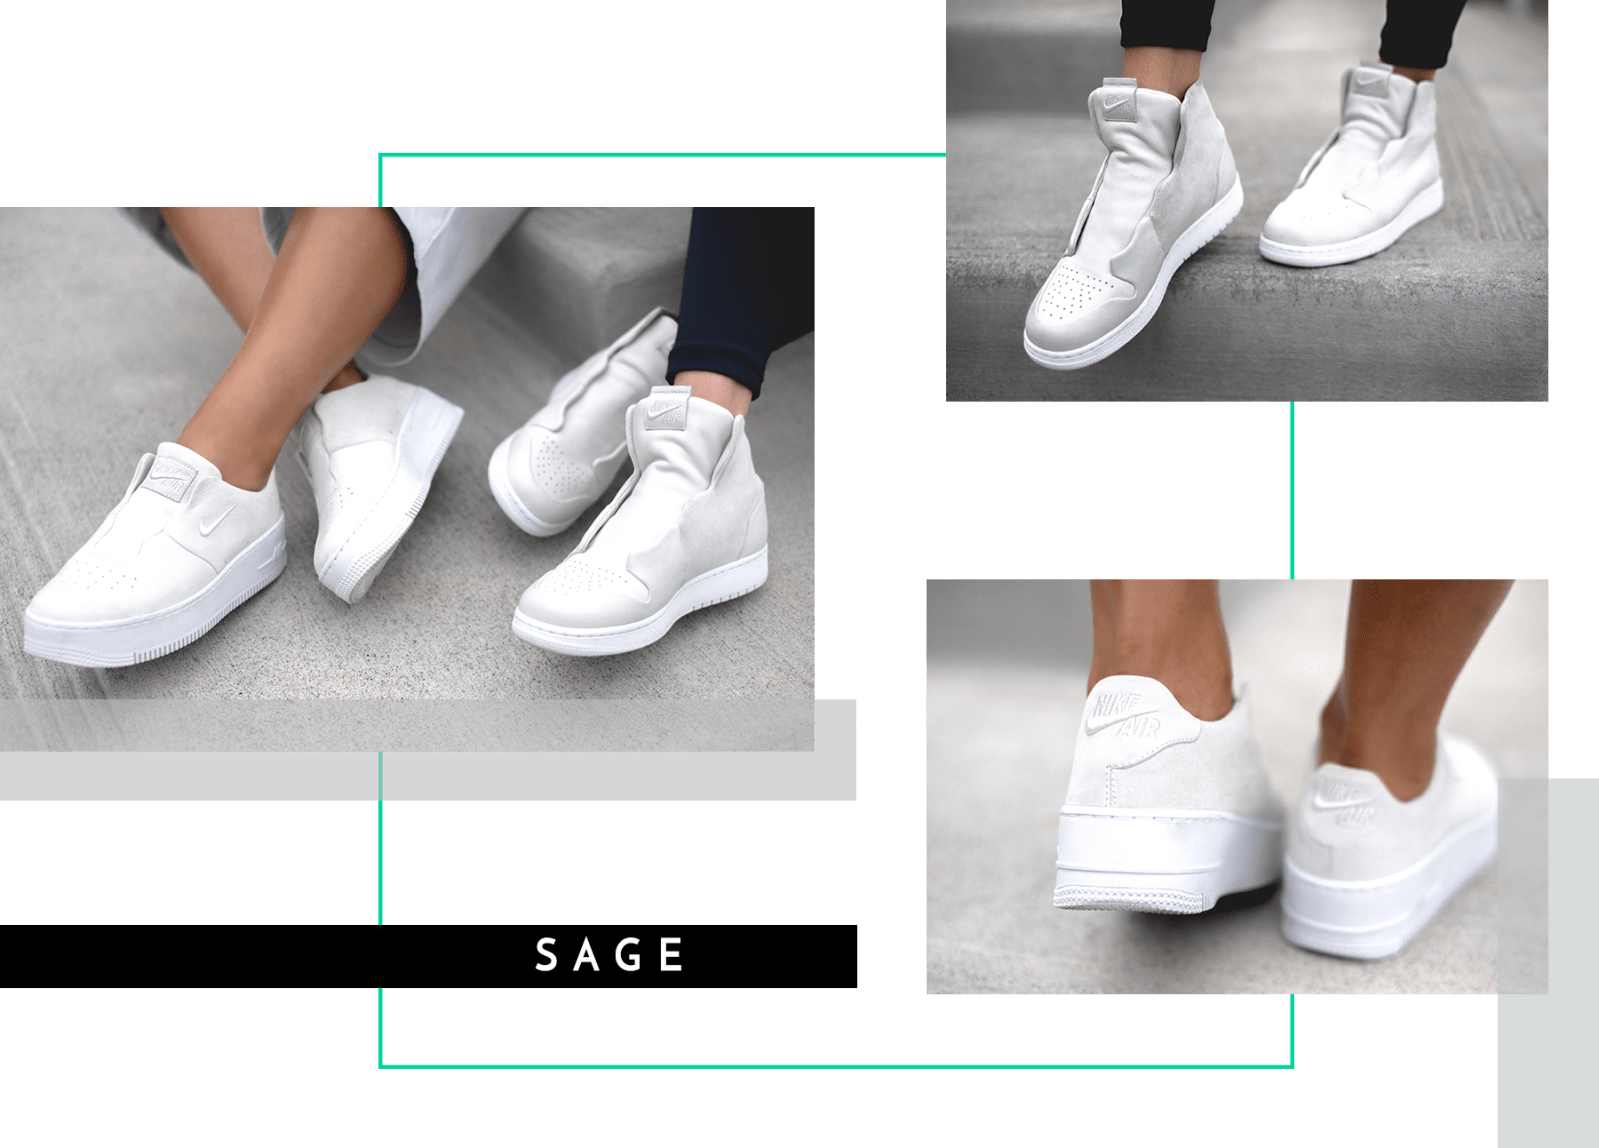 Nike The 1 Reimagined All Female Designers Collective Air Jordan 1 Air Force 1 Jester Lover Rebel Sage Explorer White Women Exclusive Editorial Interview Georgina James Marie Crow Where to Buy Release Date